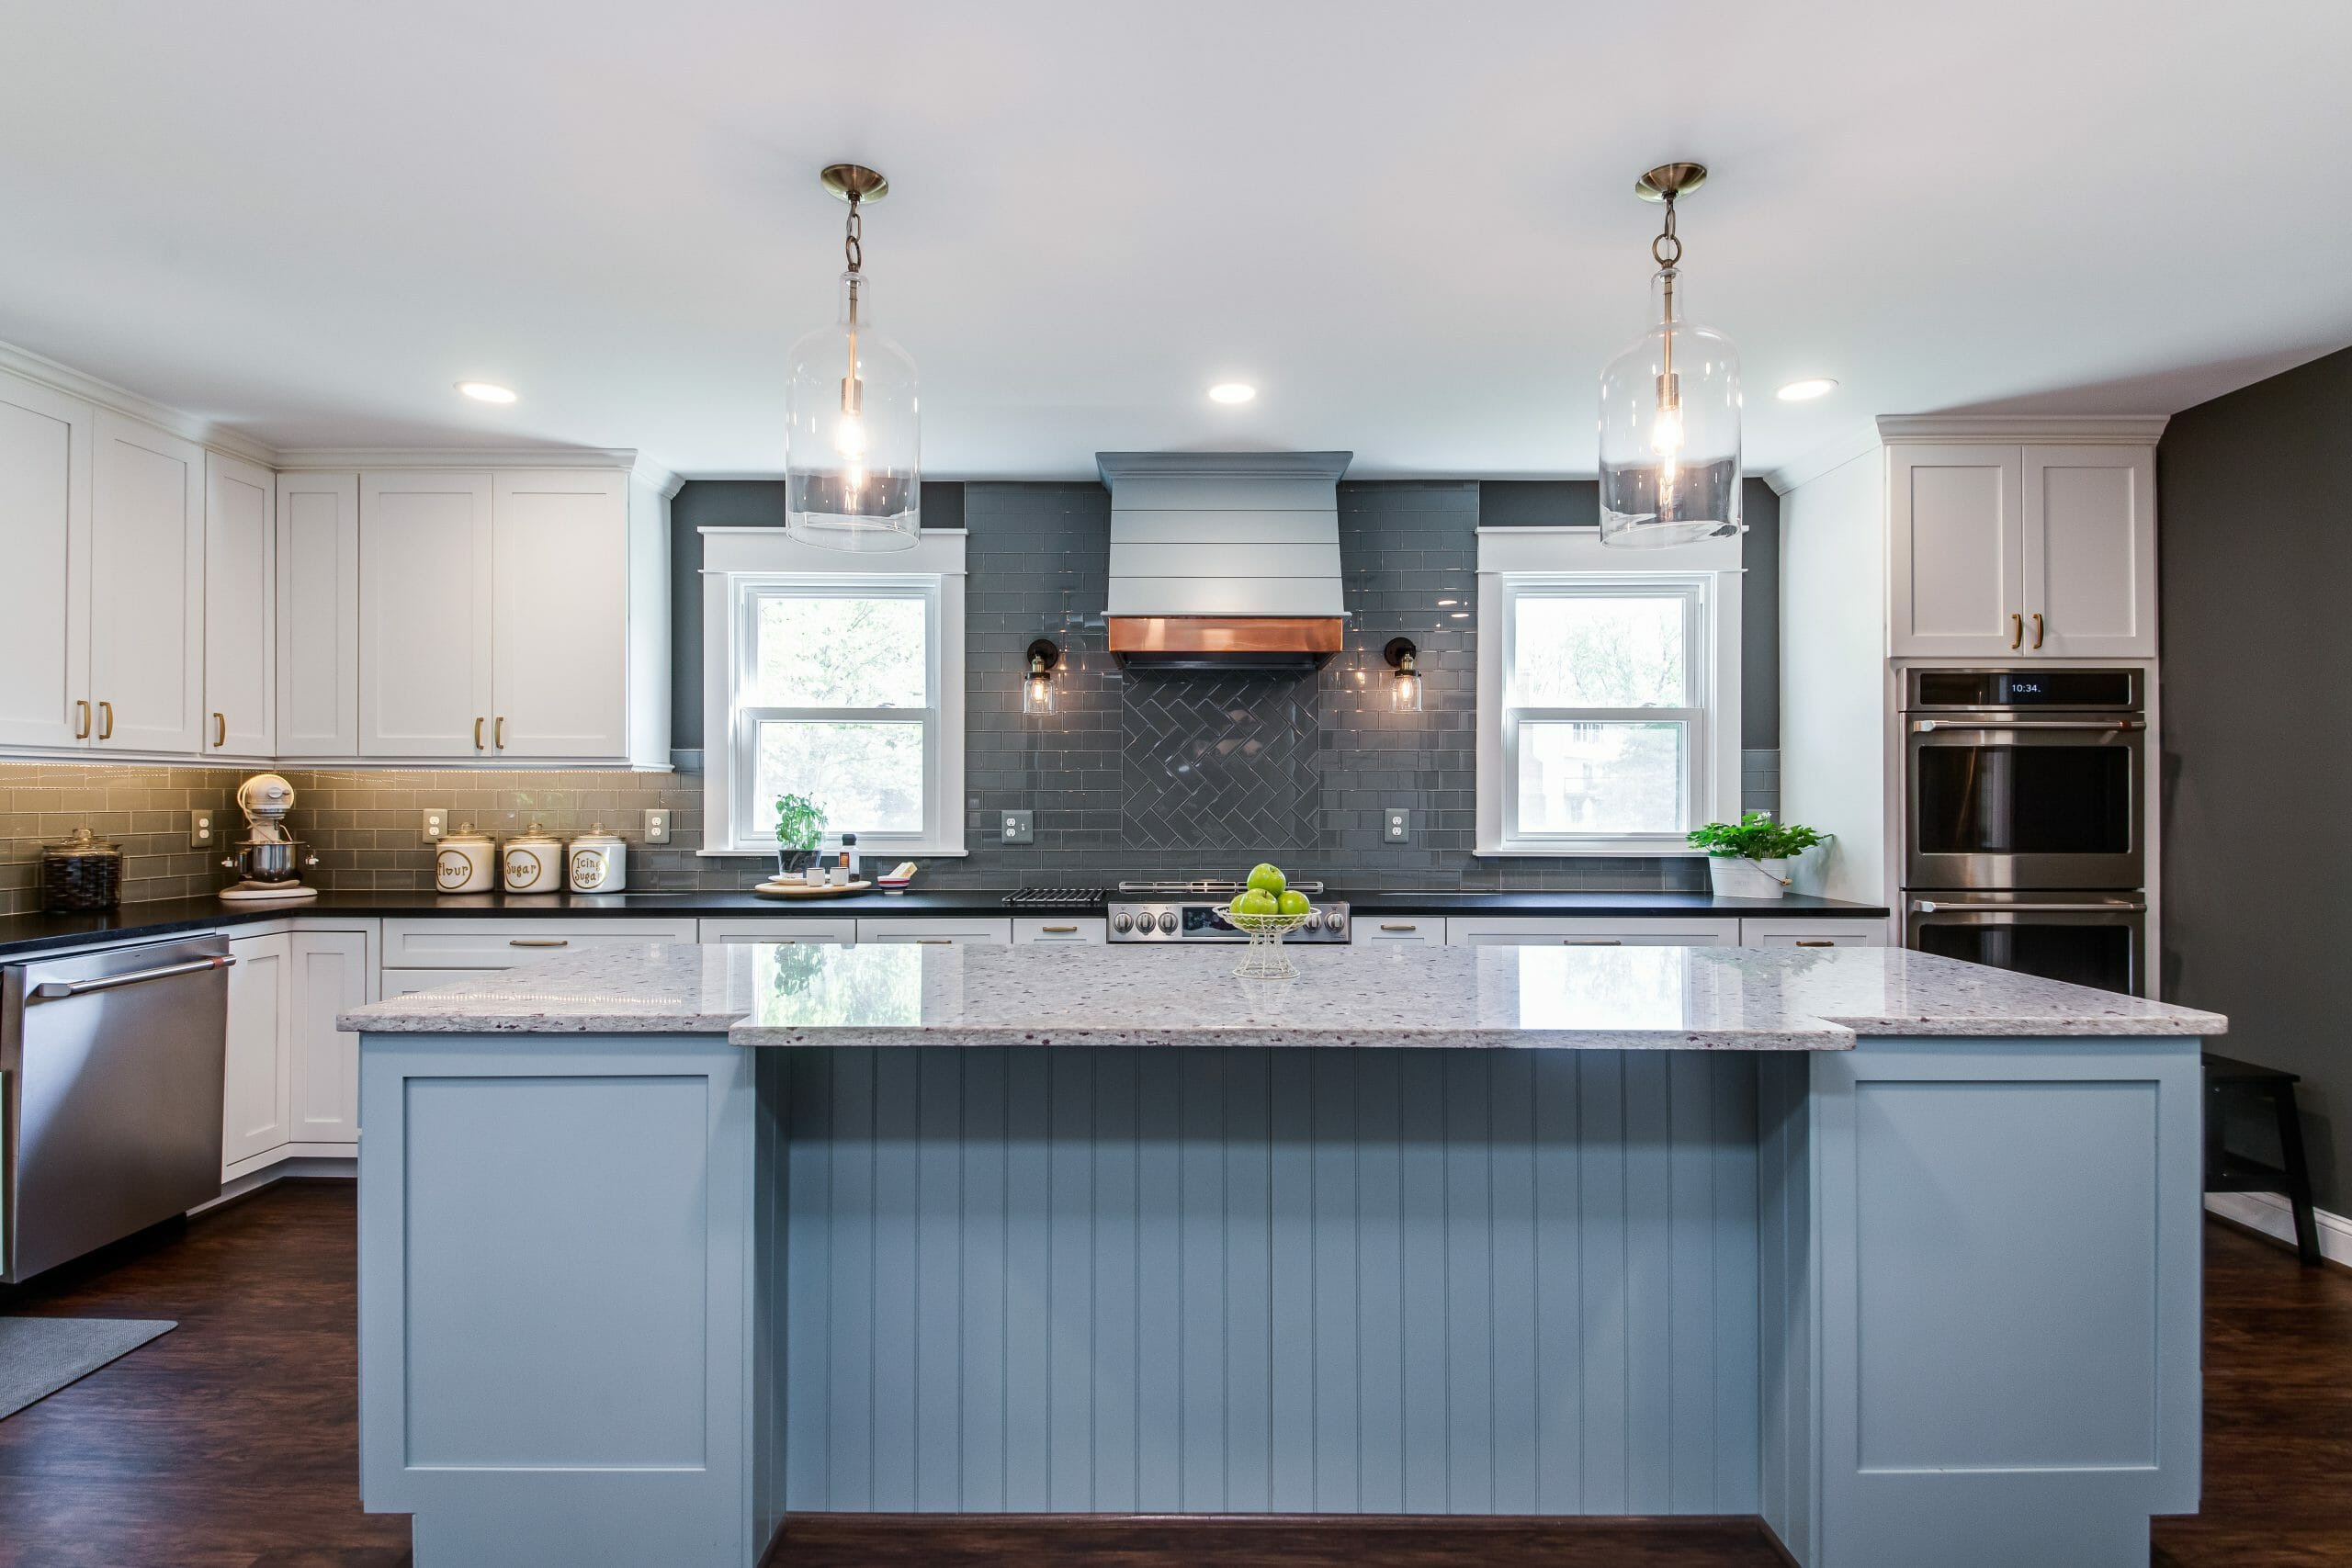 GRB Kitchen Remodeling